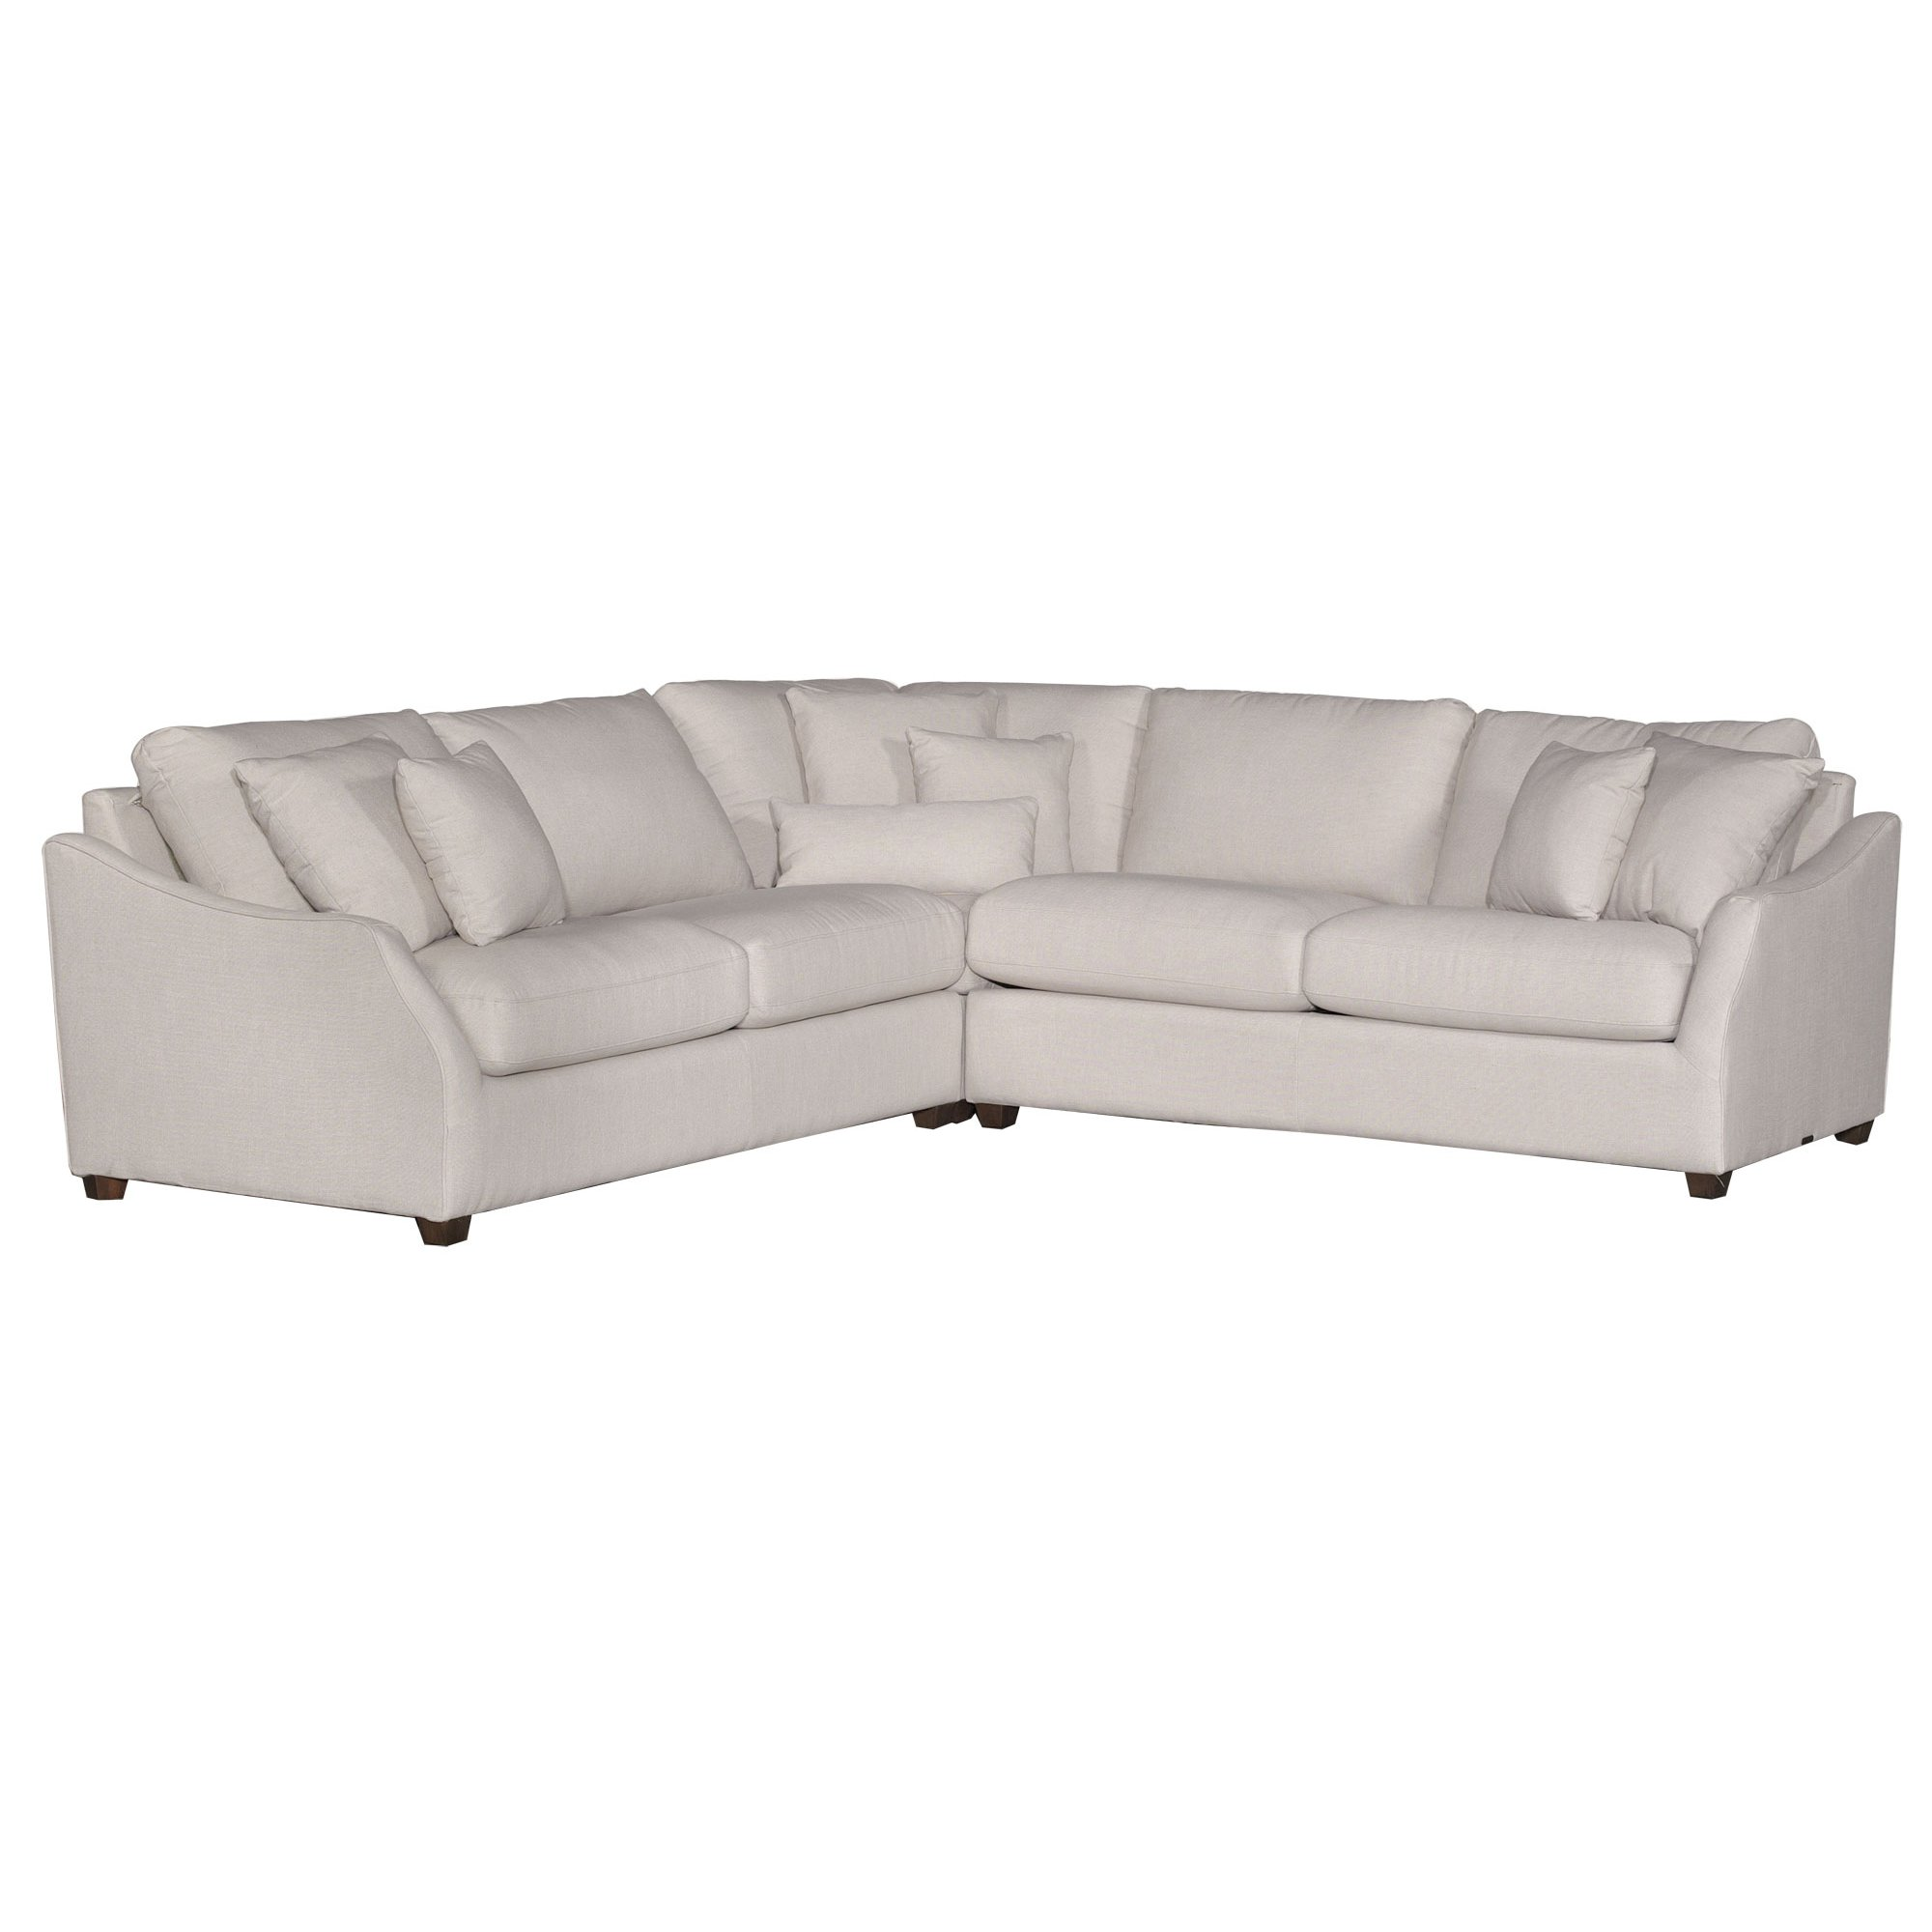 by zahra fabric separately shipping christopher sectional pieces knight sofa product garden free sold home set overstock piece today